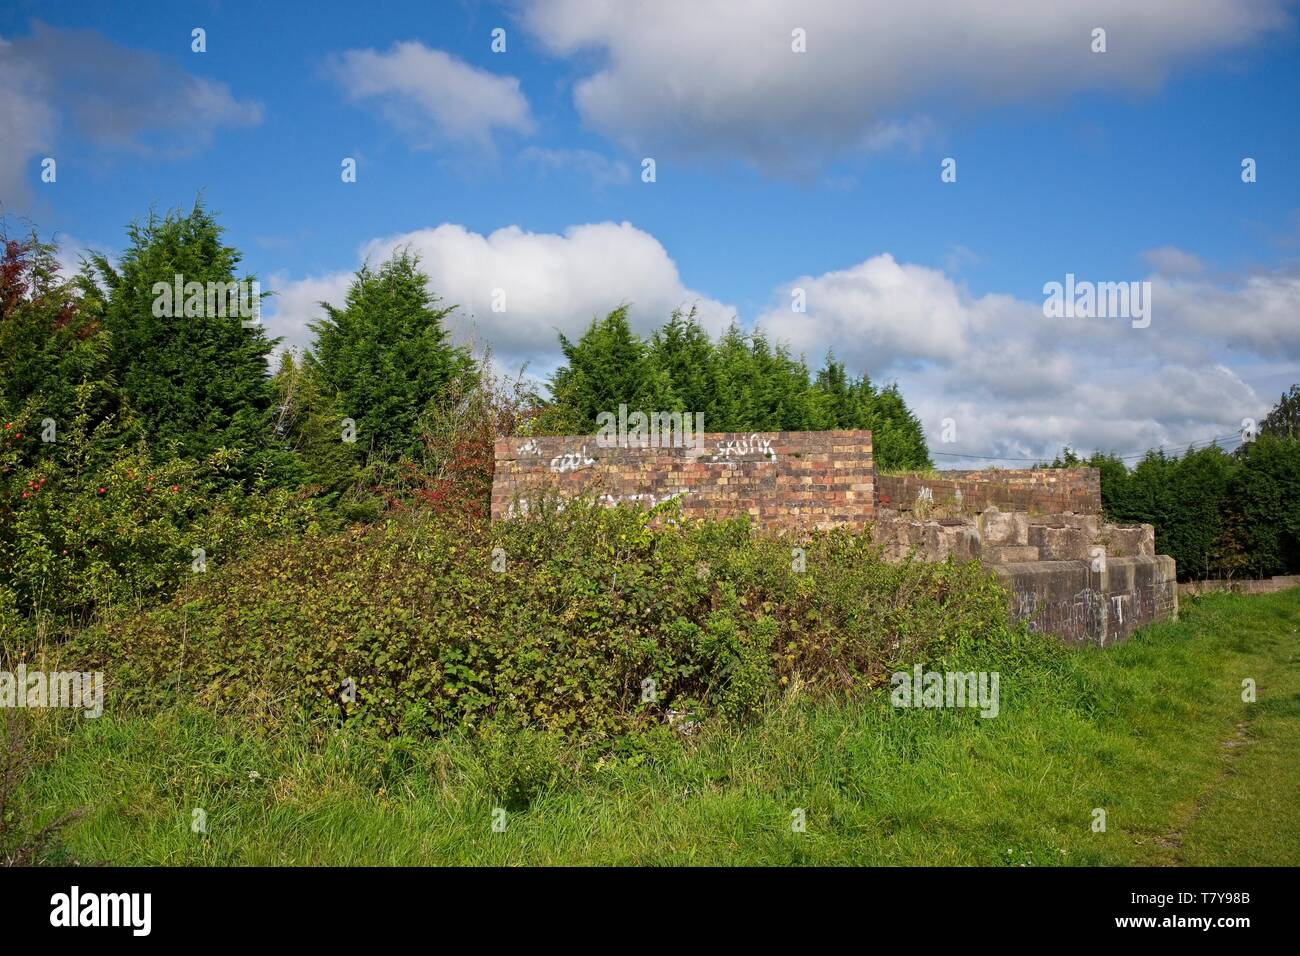 Remains of a demolished bridge or bridge foundation over the Trent and Mersey canal in Moston Cheshire UK - Stock Image